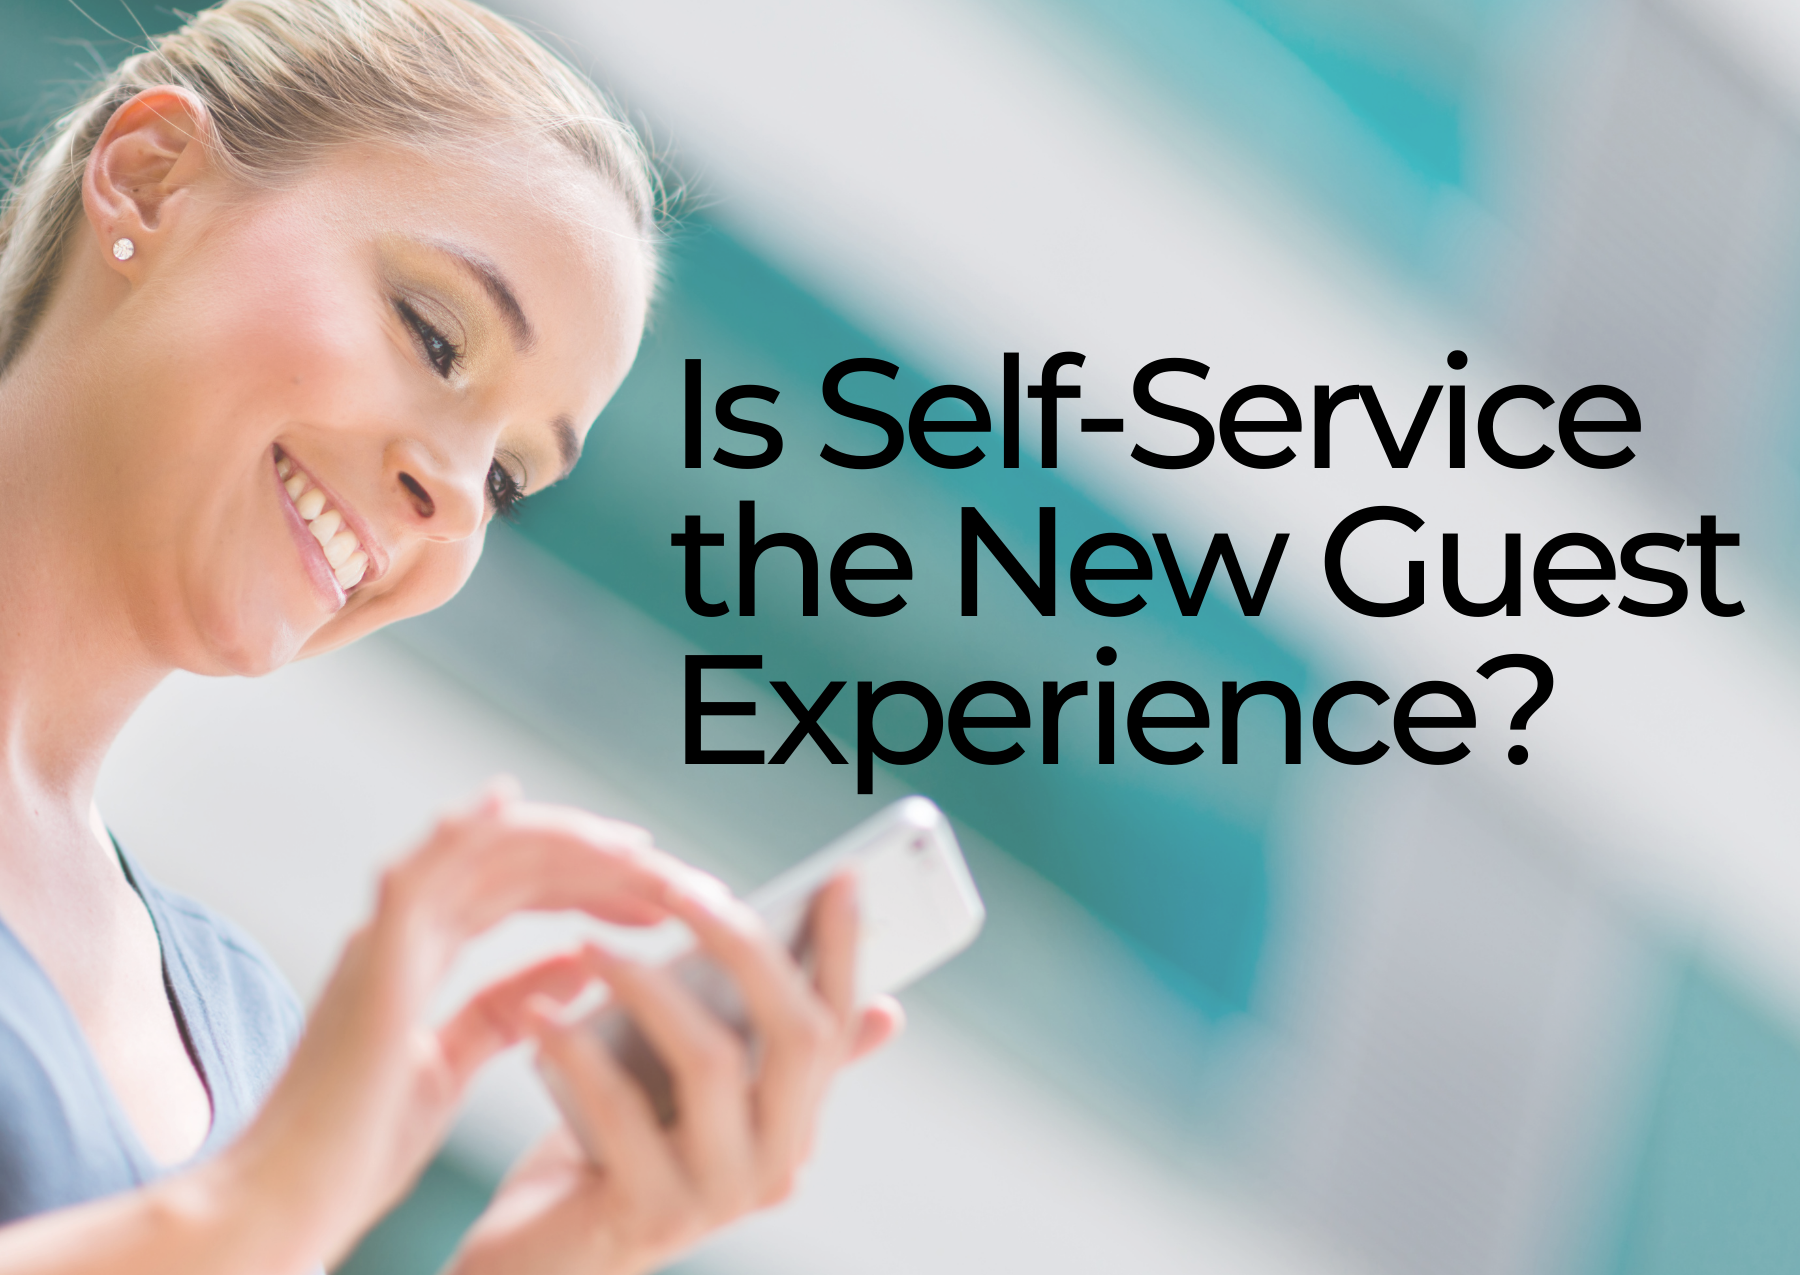 Is Self-Service the New Guest Experience?